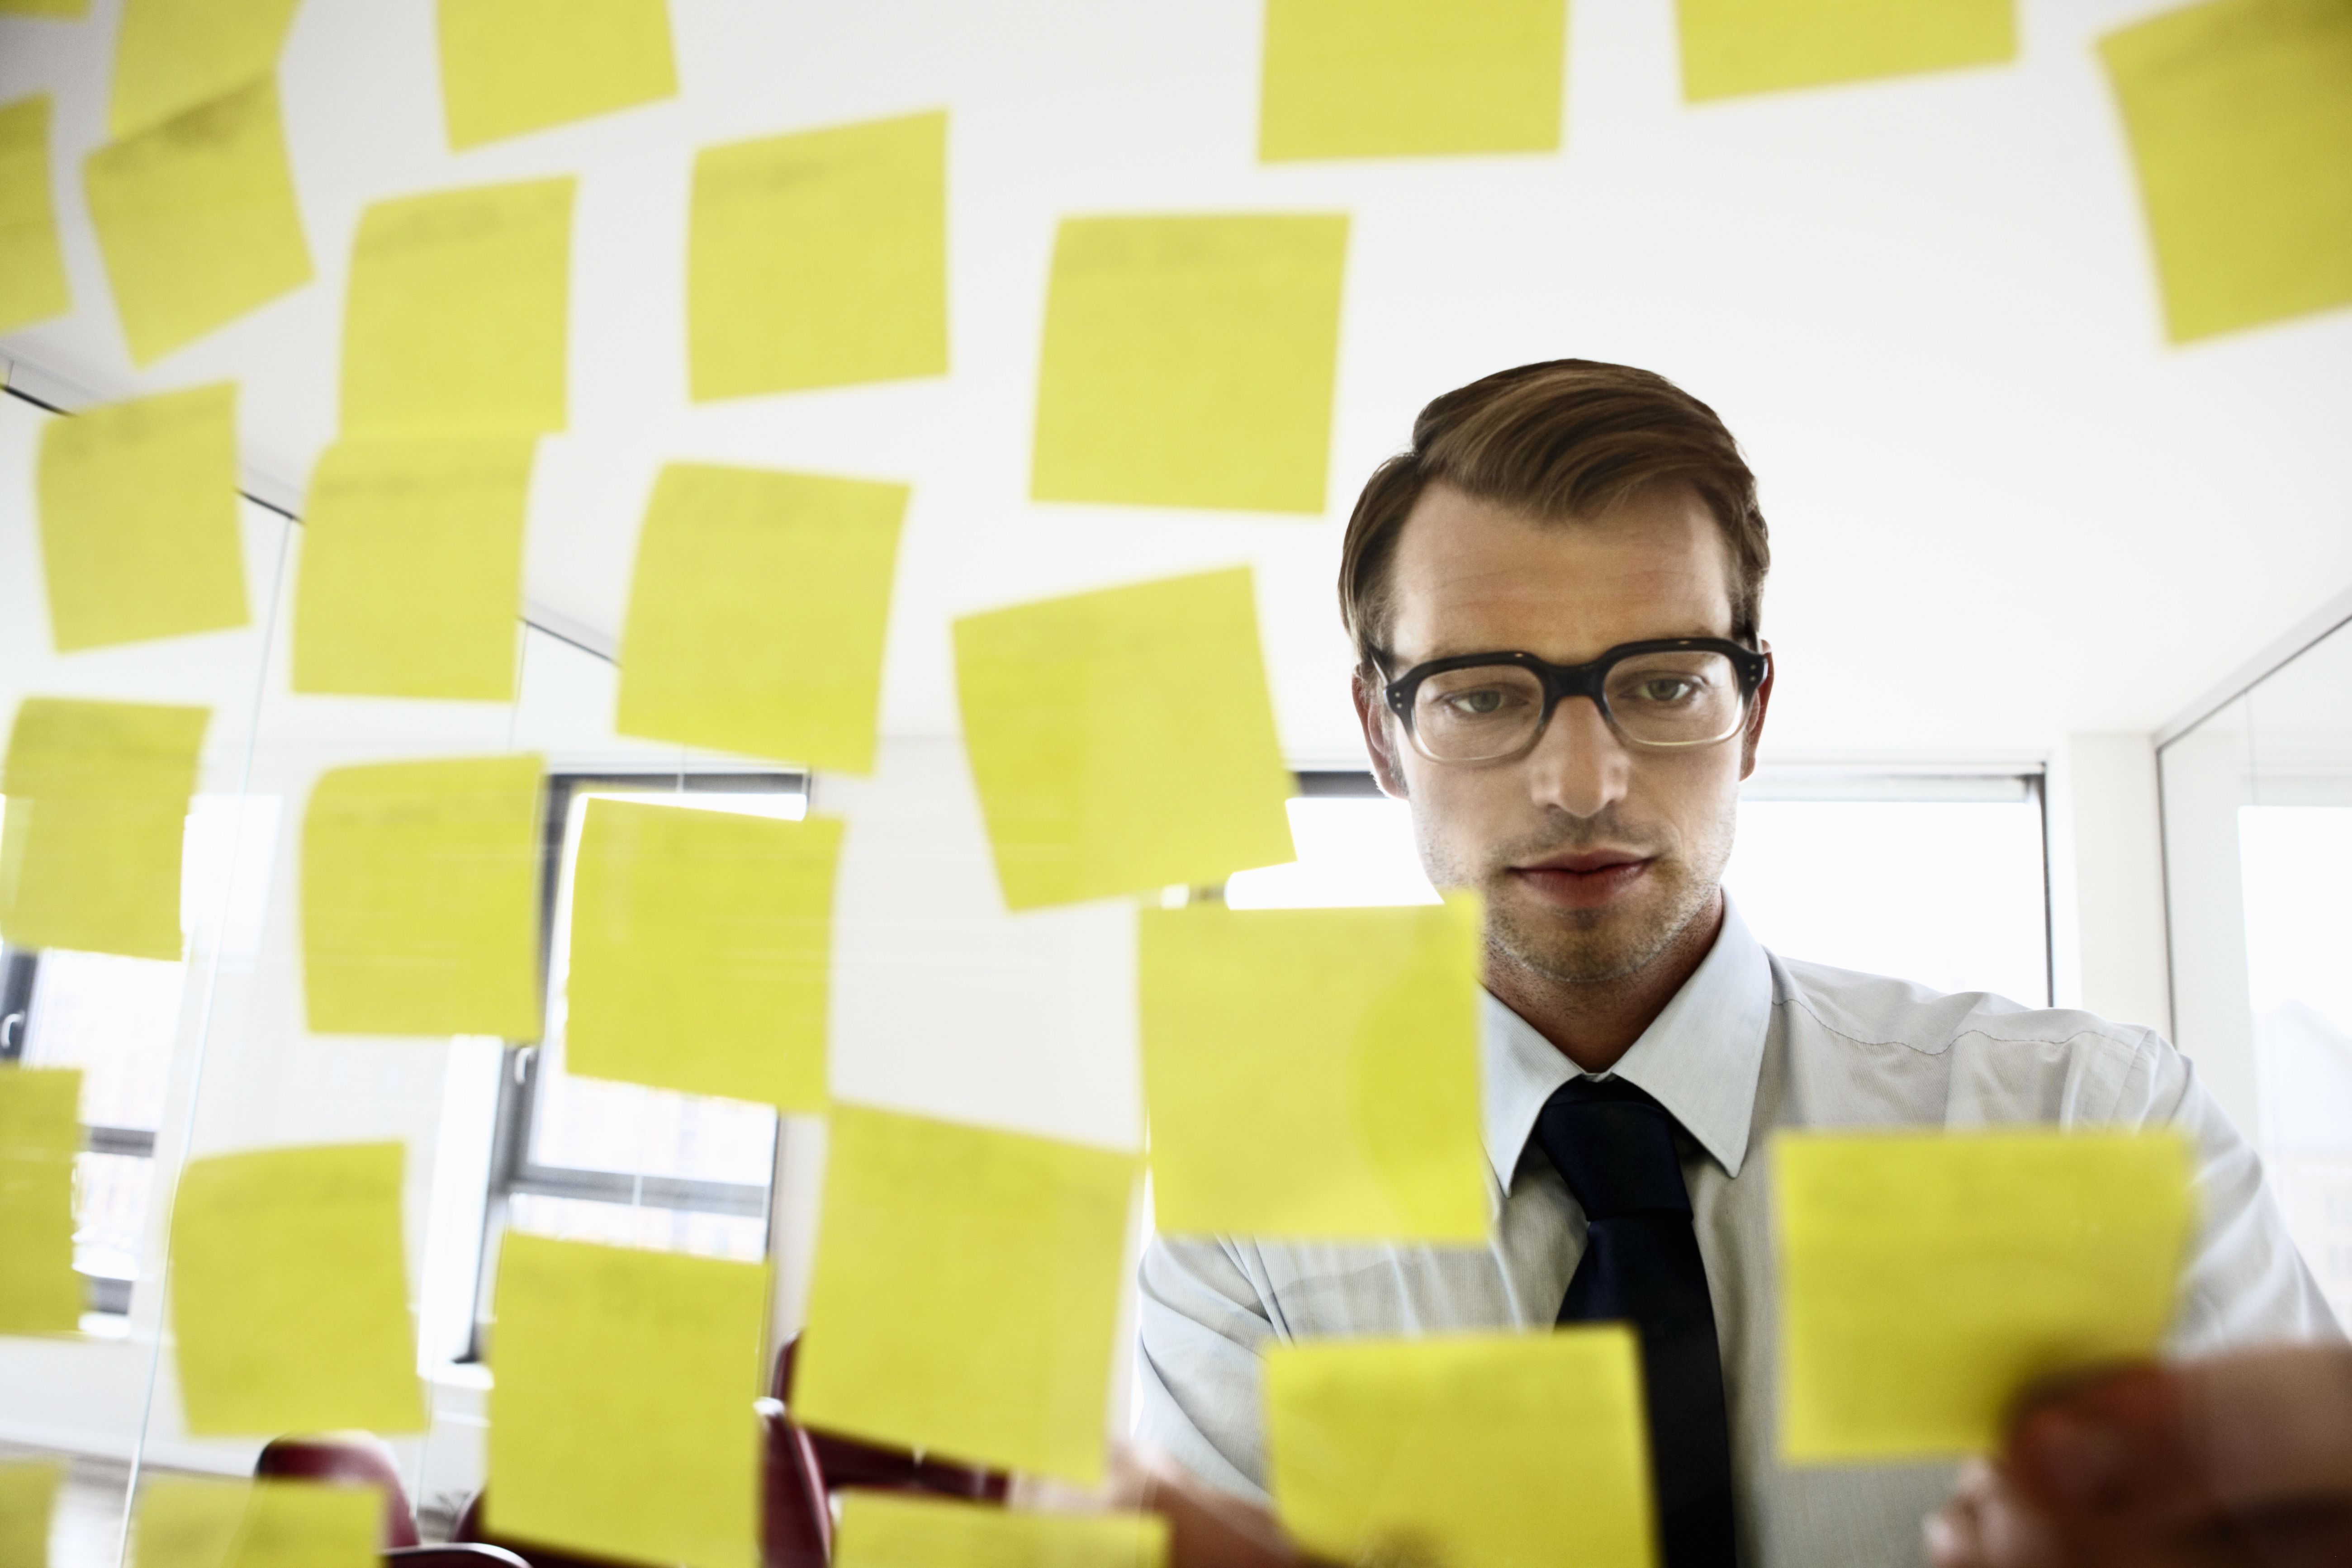 A man placing sticky notes on a mirror